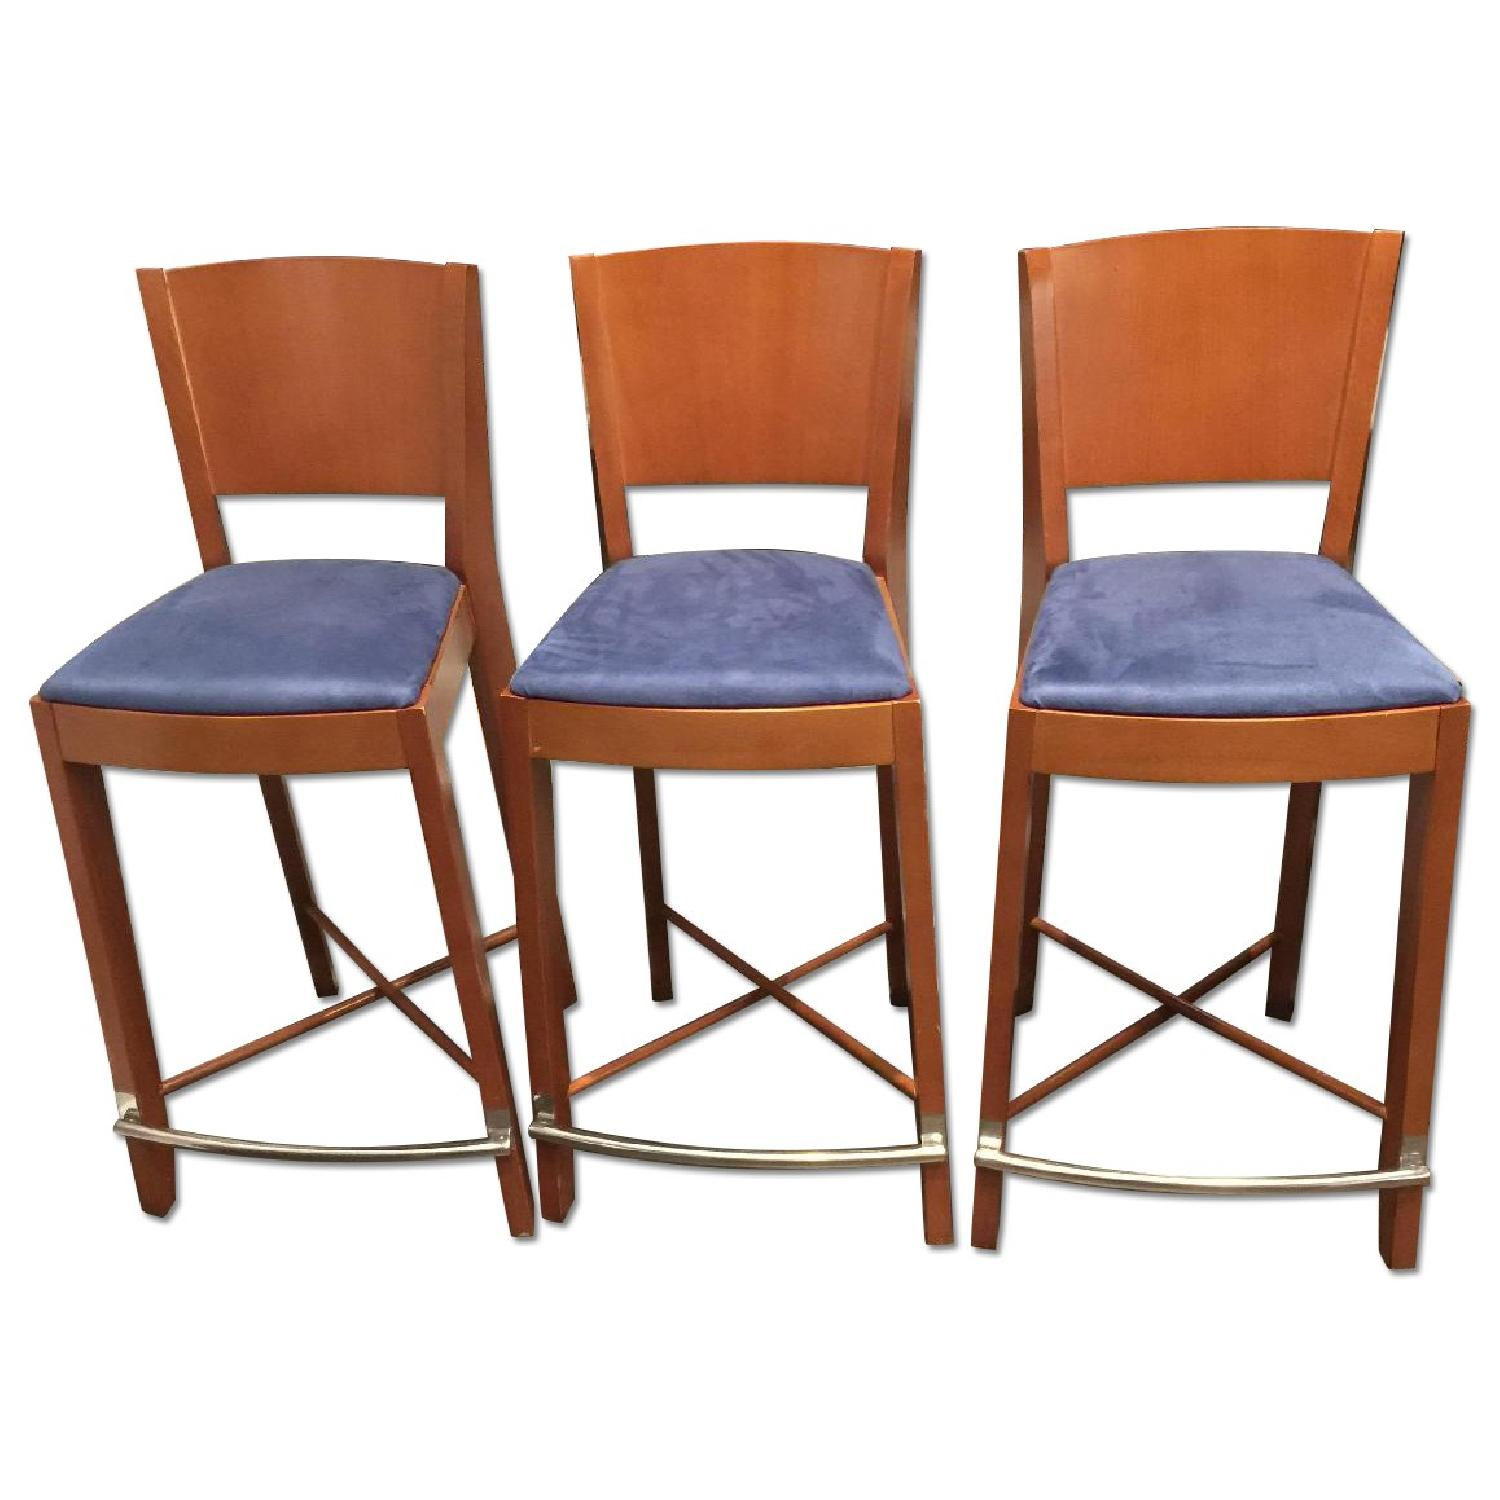 The Morson Collection Cherry Veneer & Ultrasuede Dining Stools - image-0